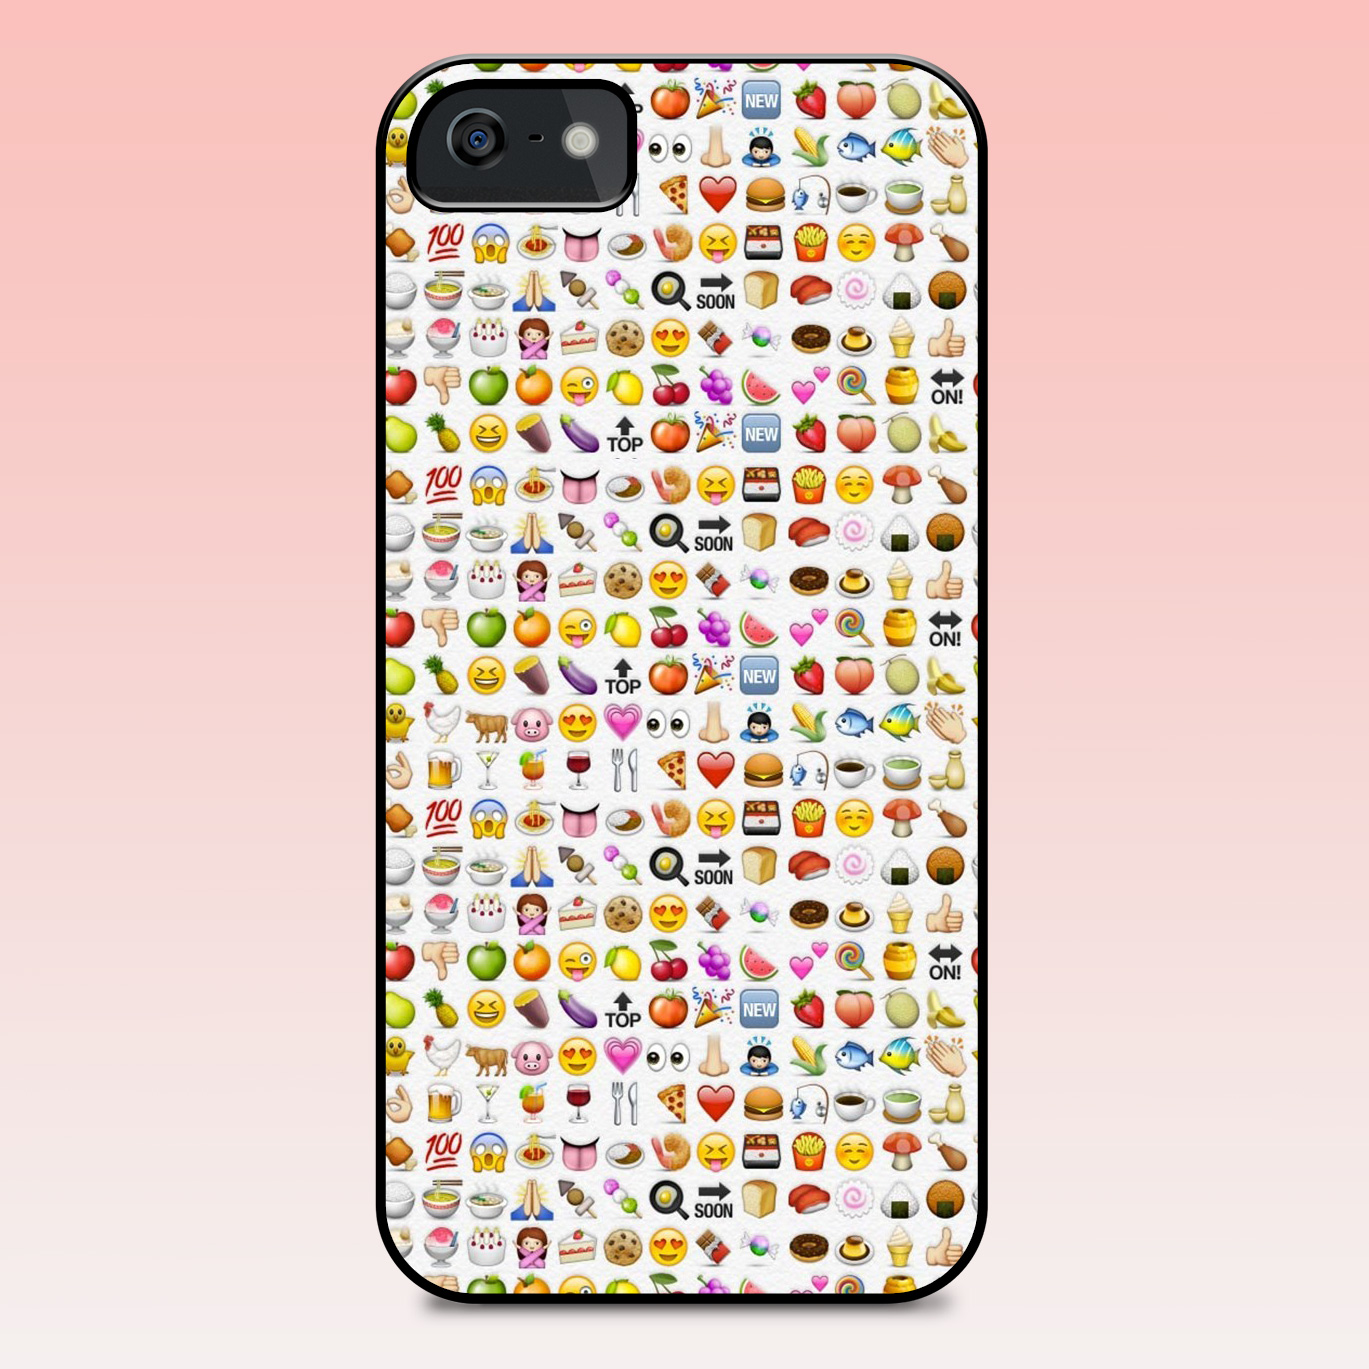 The Emoji Case